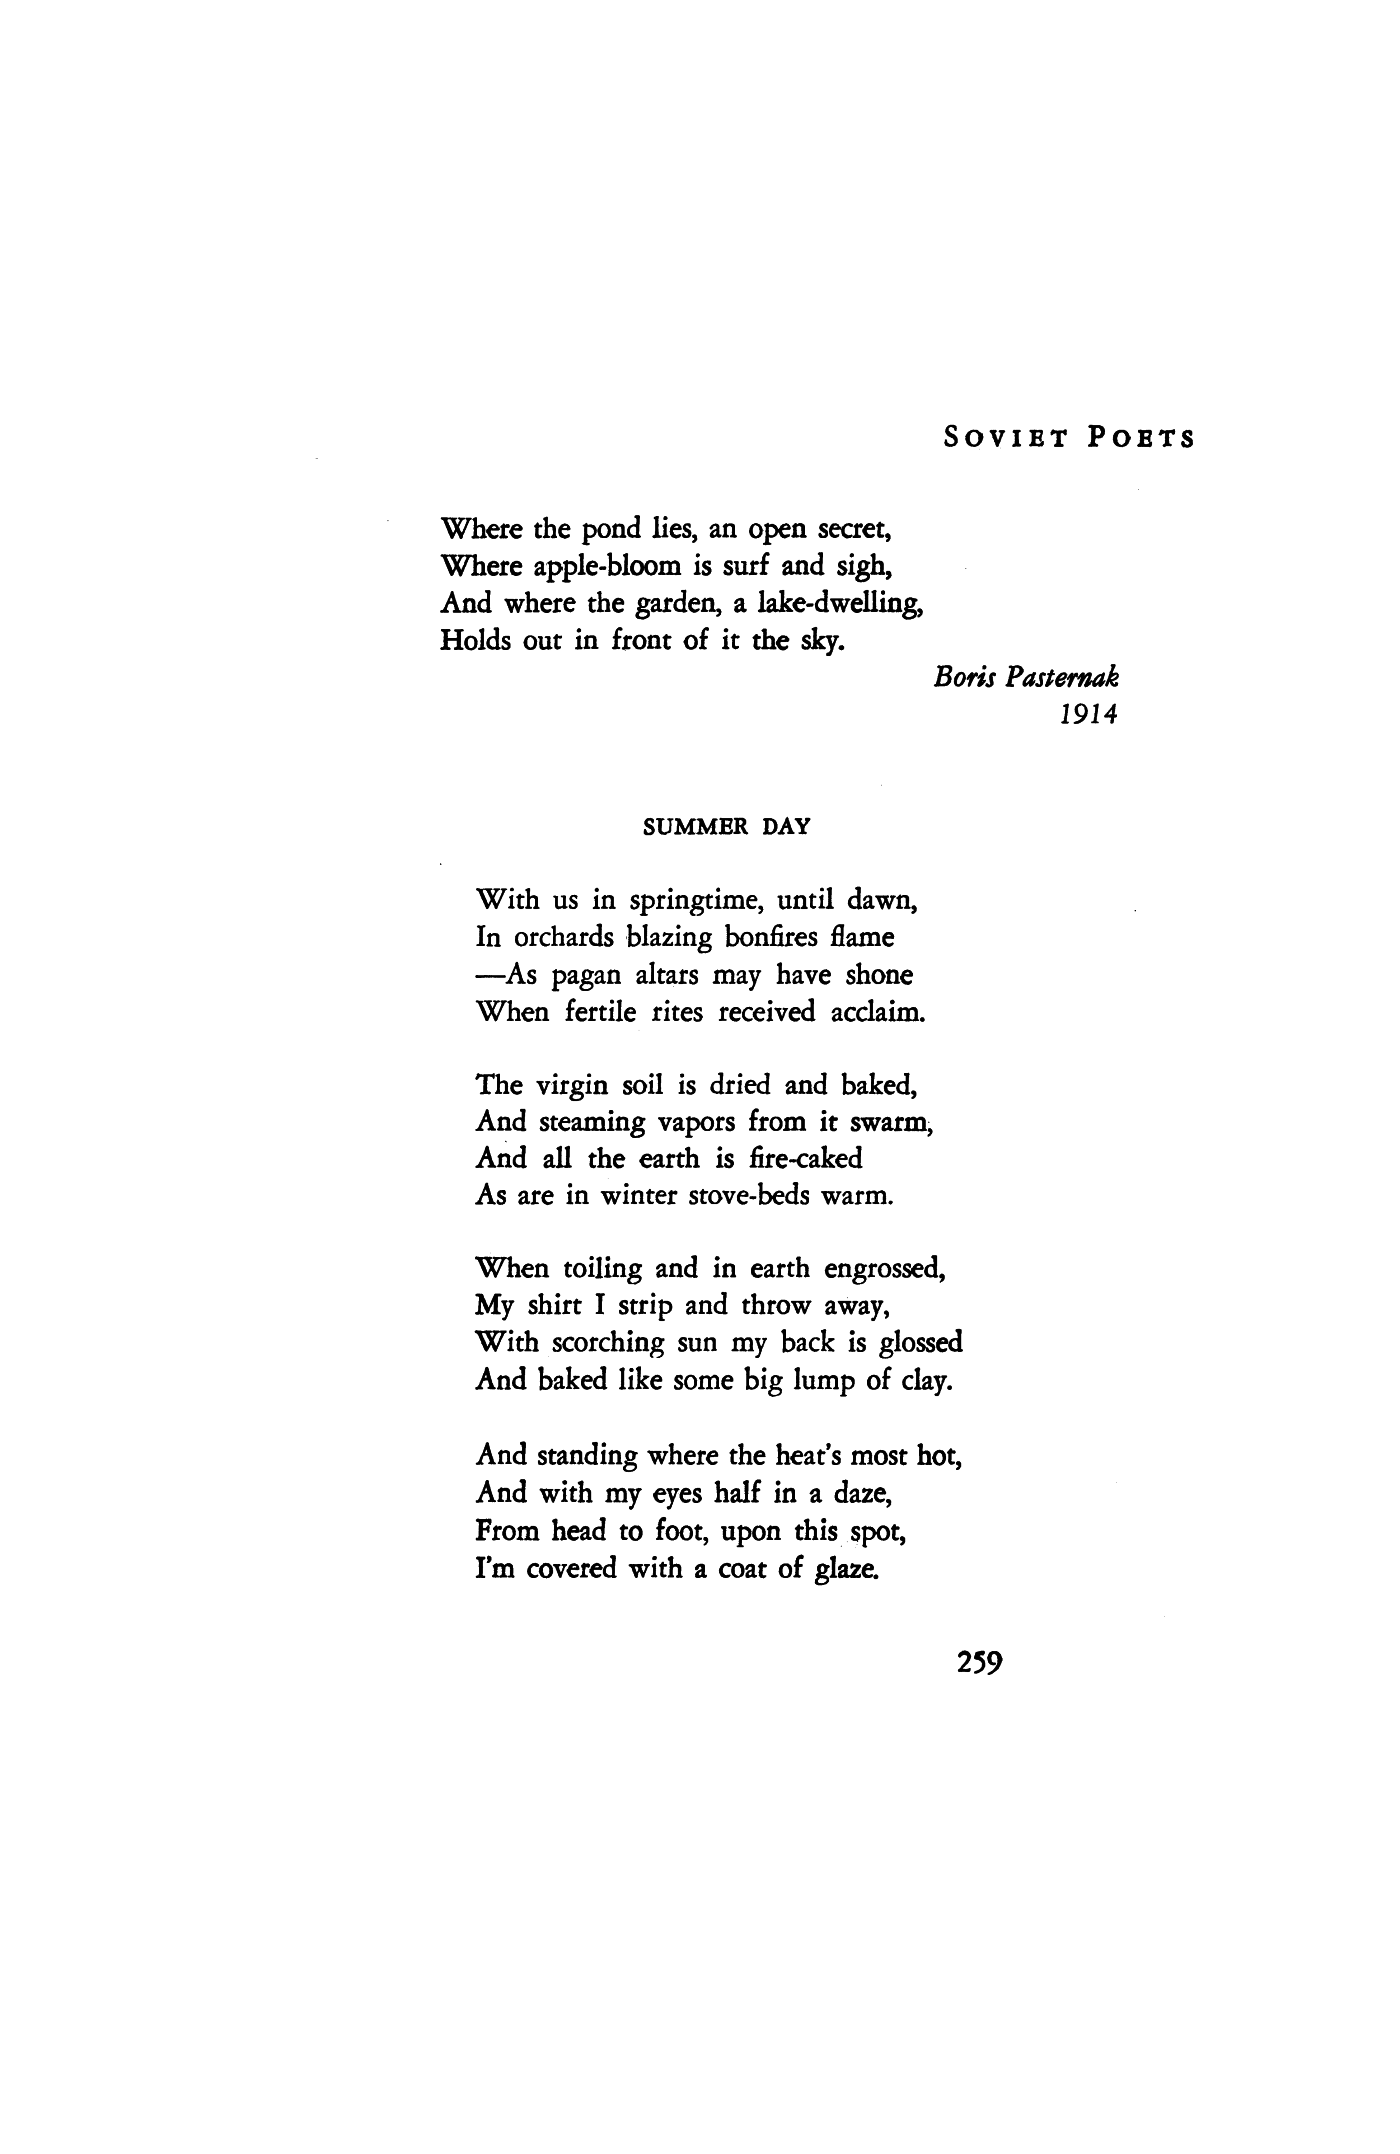 Poem by Boris Pasternak 49